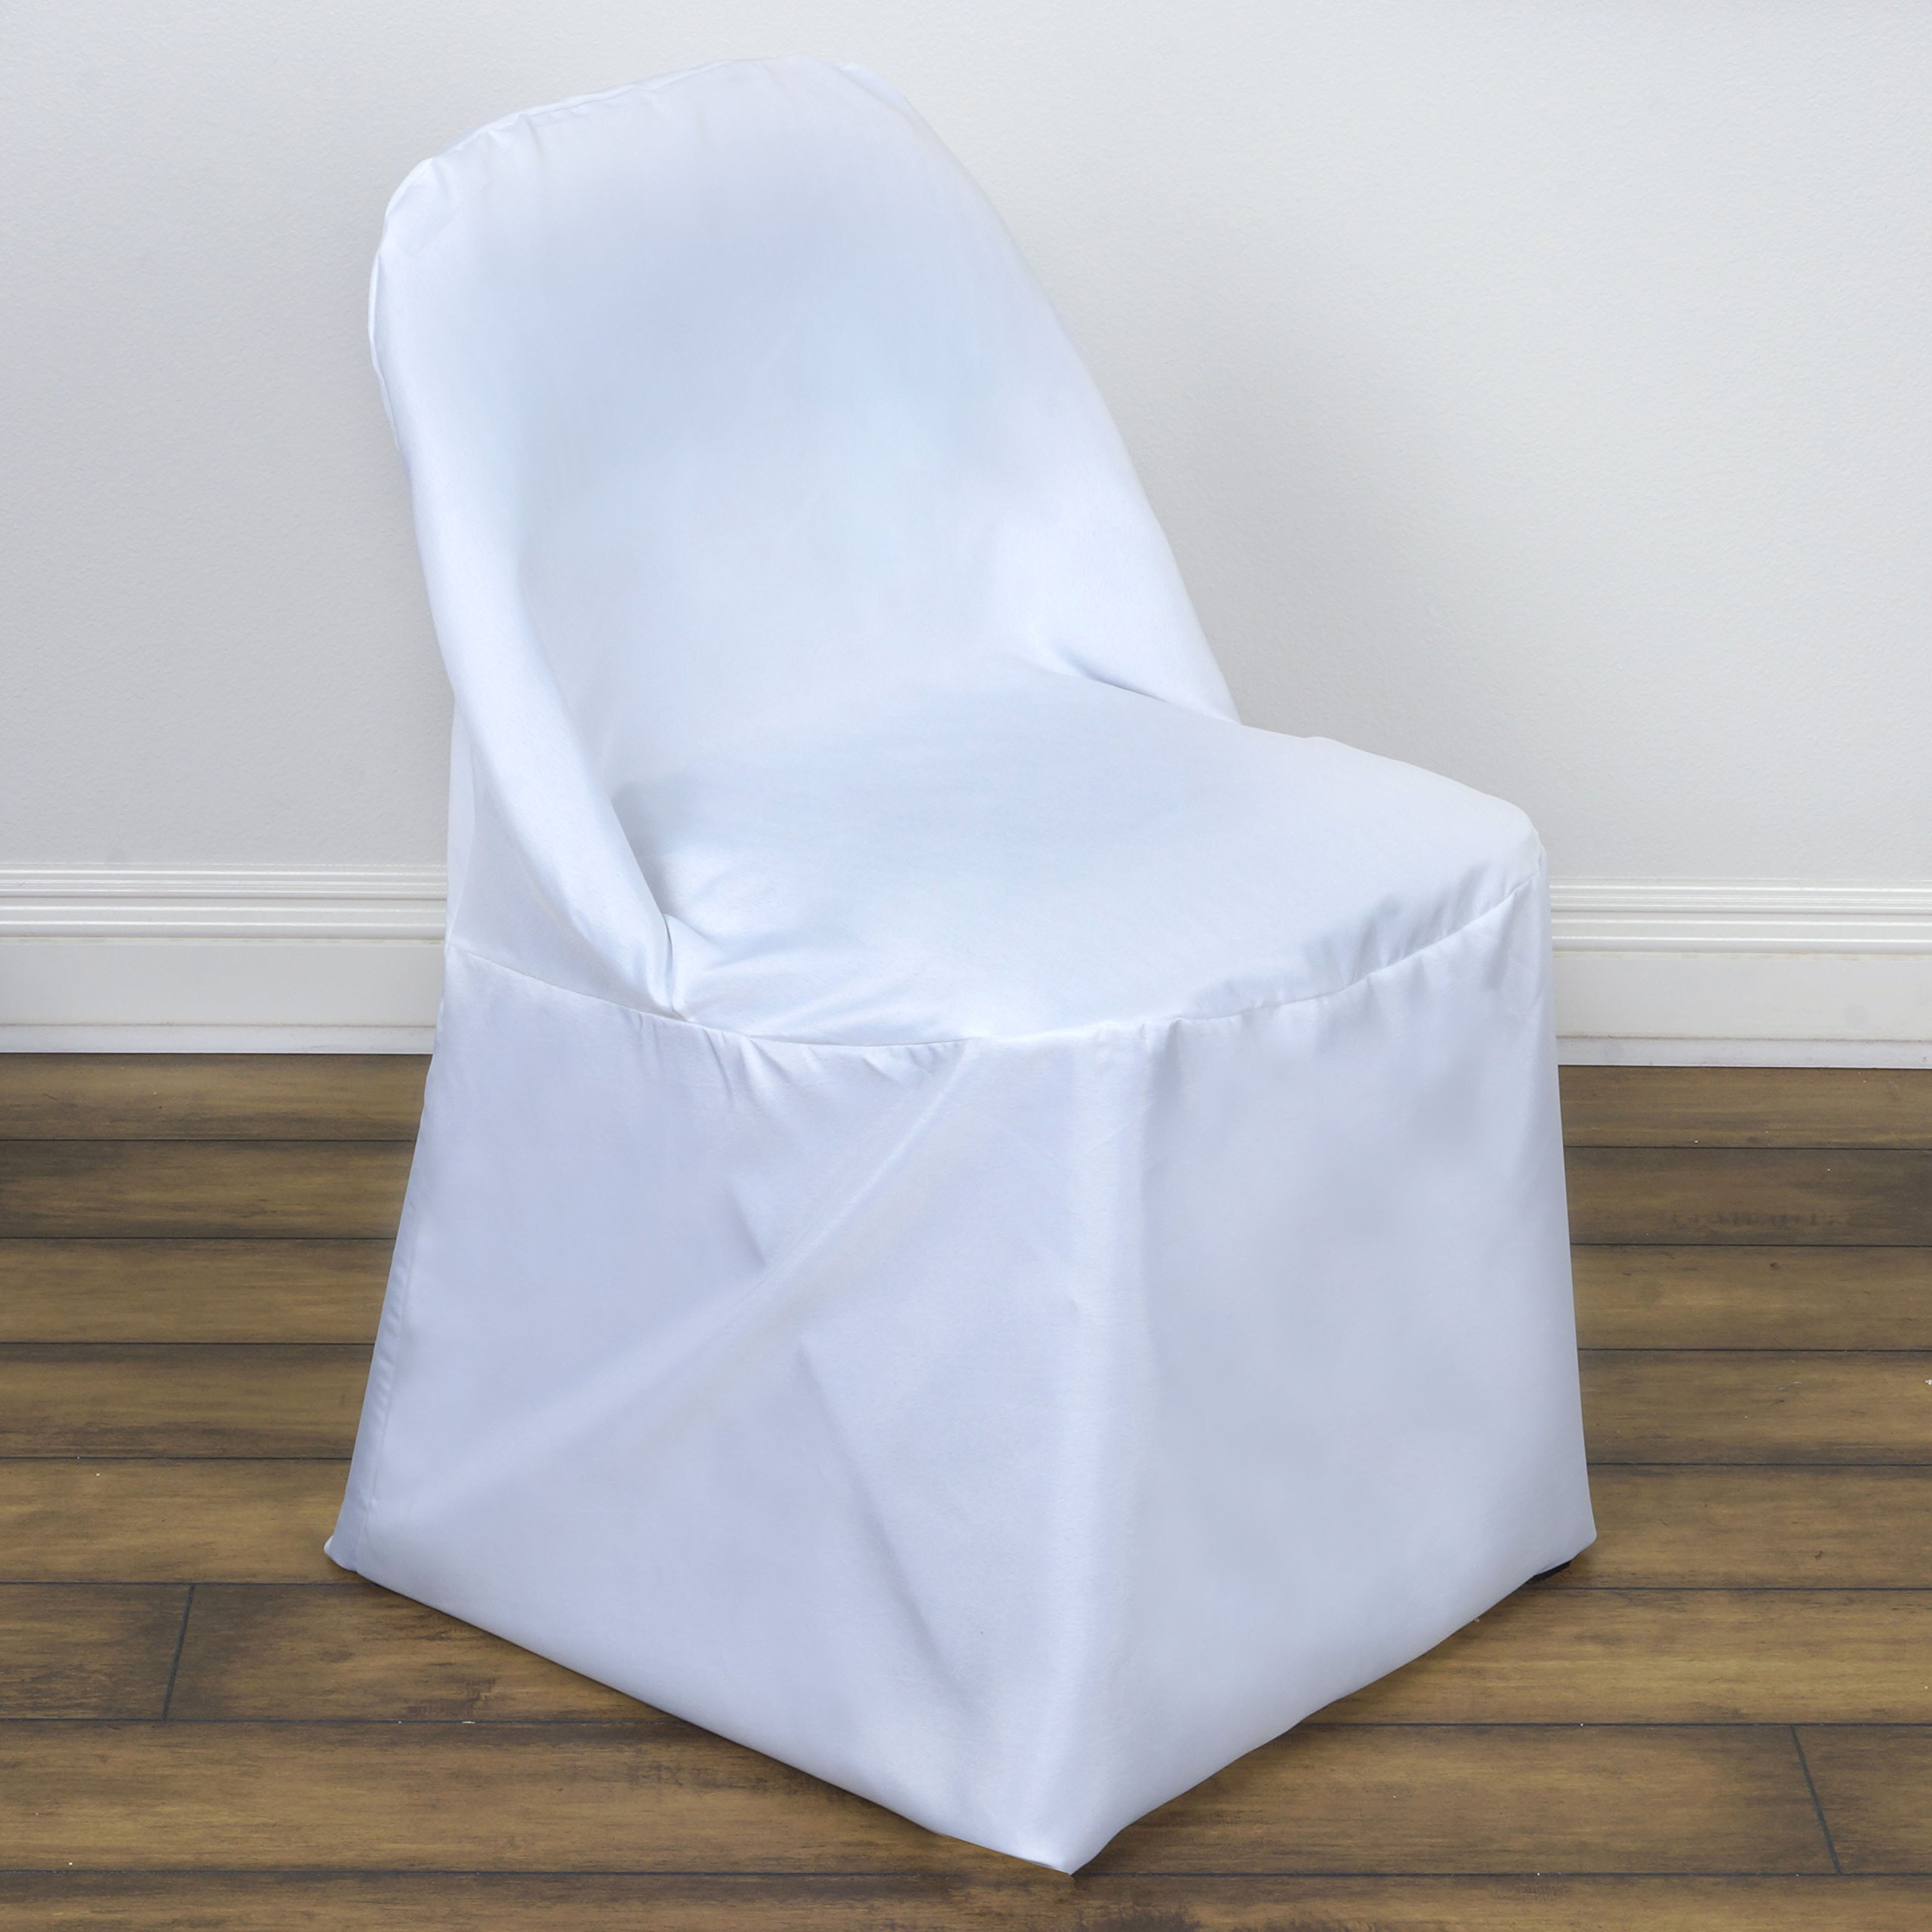 BalsaCircle 50 pcs White Folding Round Polyester Chair Covers Slipcovers for Wedding Party Reception Decorations